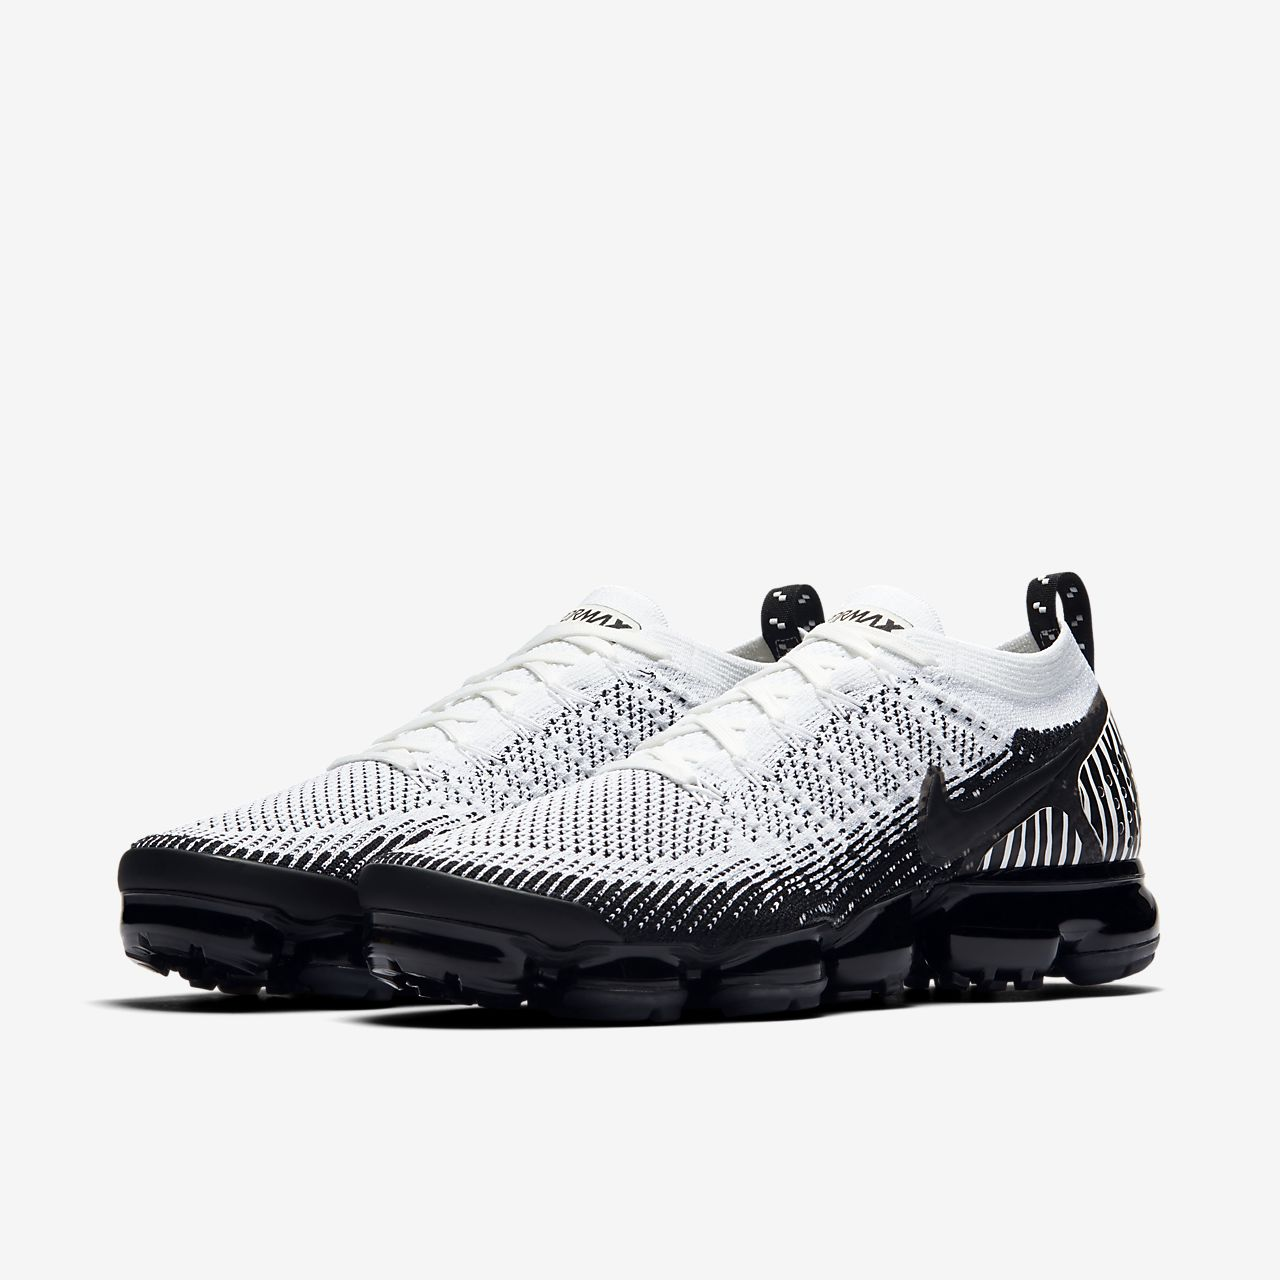 buy popular a36e4 21c52 ... Chaussure Nike Air VaporMax Flyknit 2 Zebra pour Homme